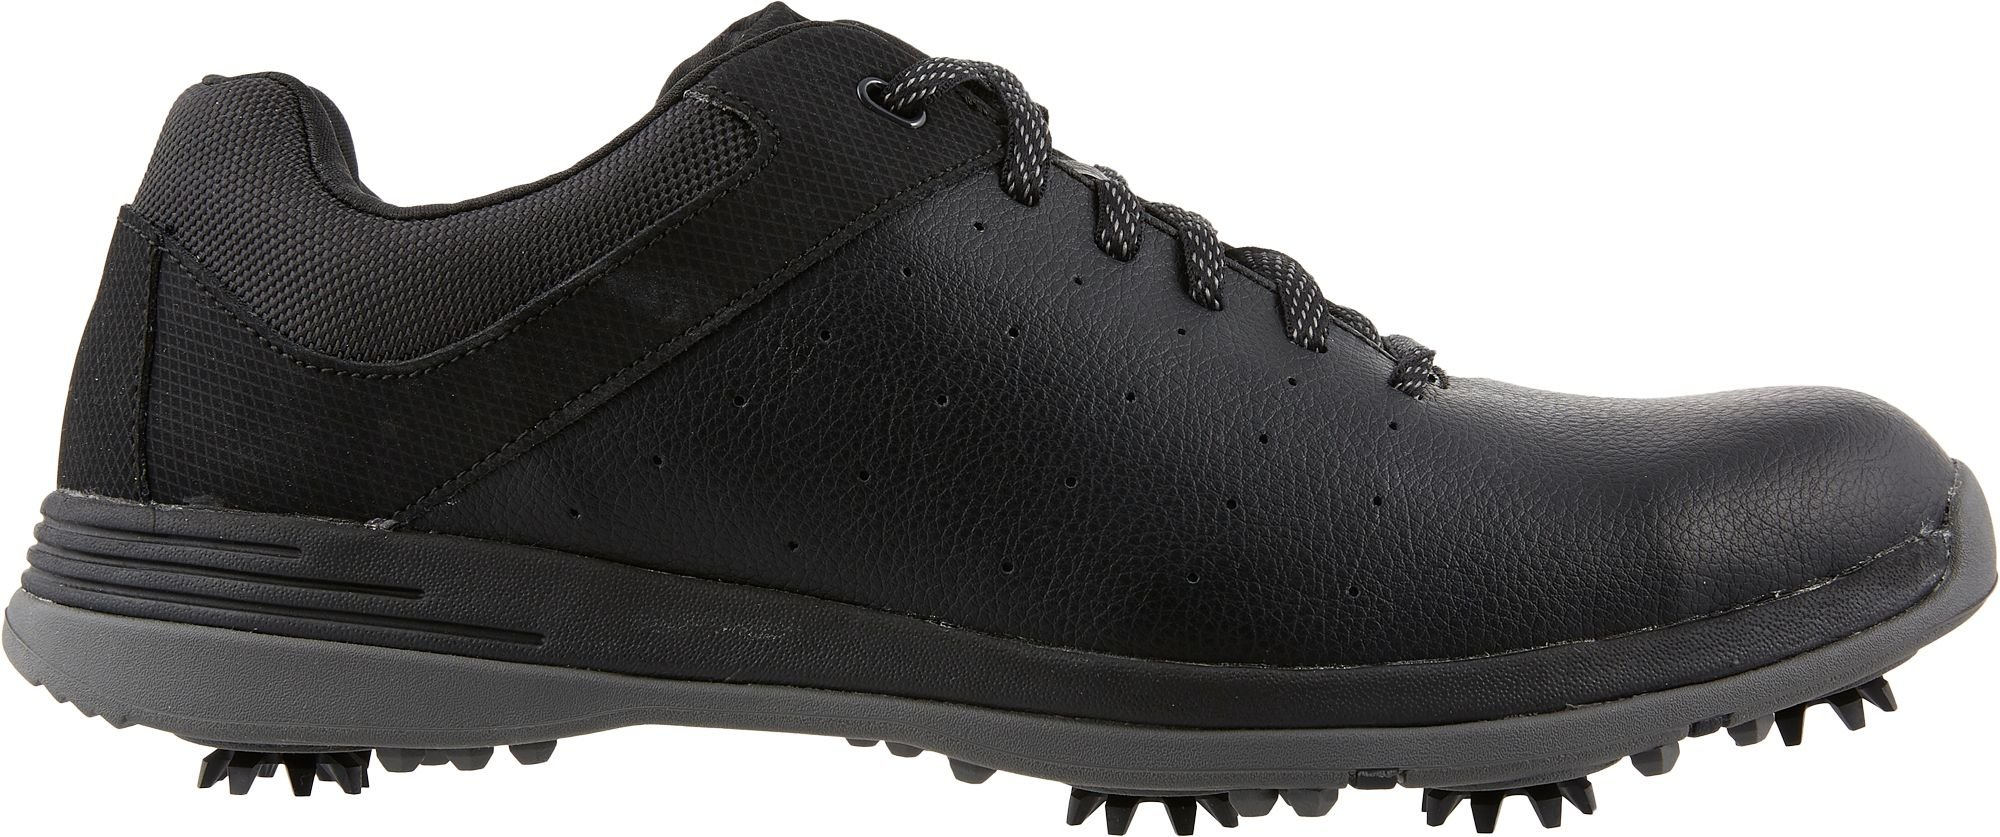 Walter Hagen Spiked Legacy Golf Shoes - Black, 11.5 D(M) US